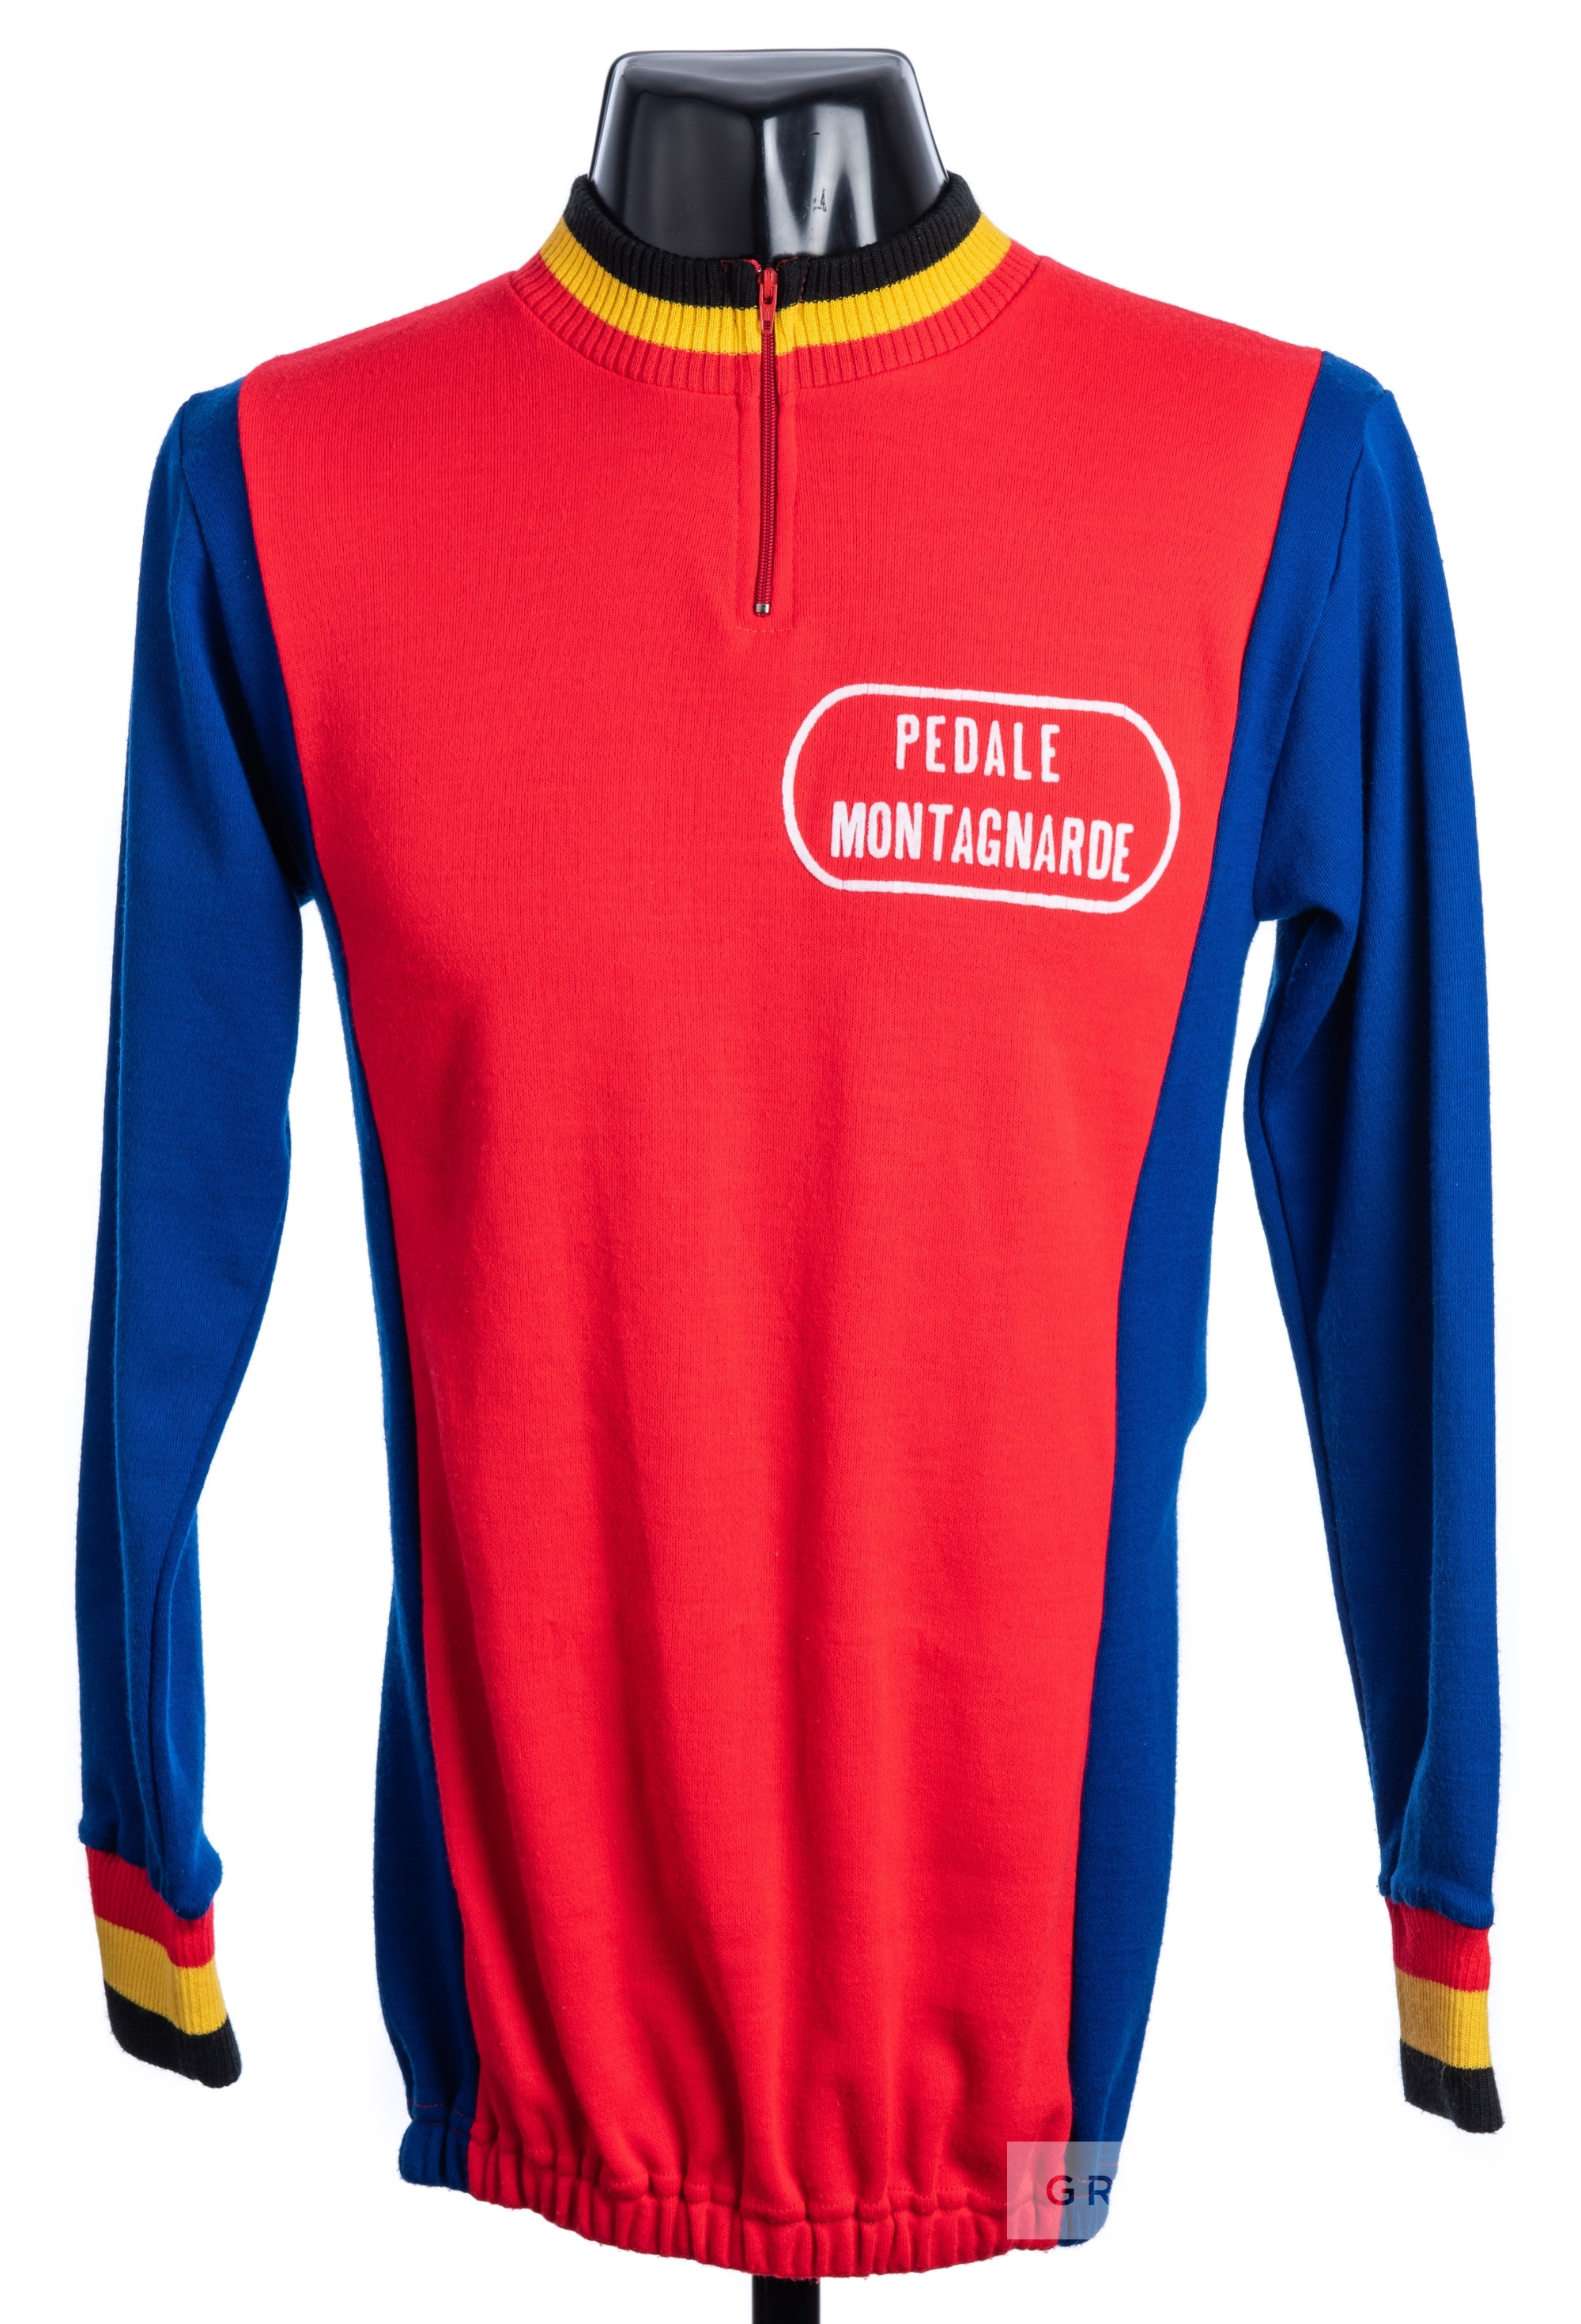 1972 red, blue, yellow and black vintage Pedale Montagnarde Cycling team race jersey, scarce, - Image 3 of 4